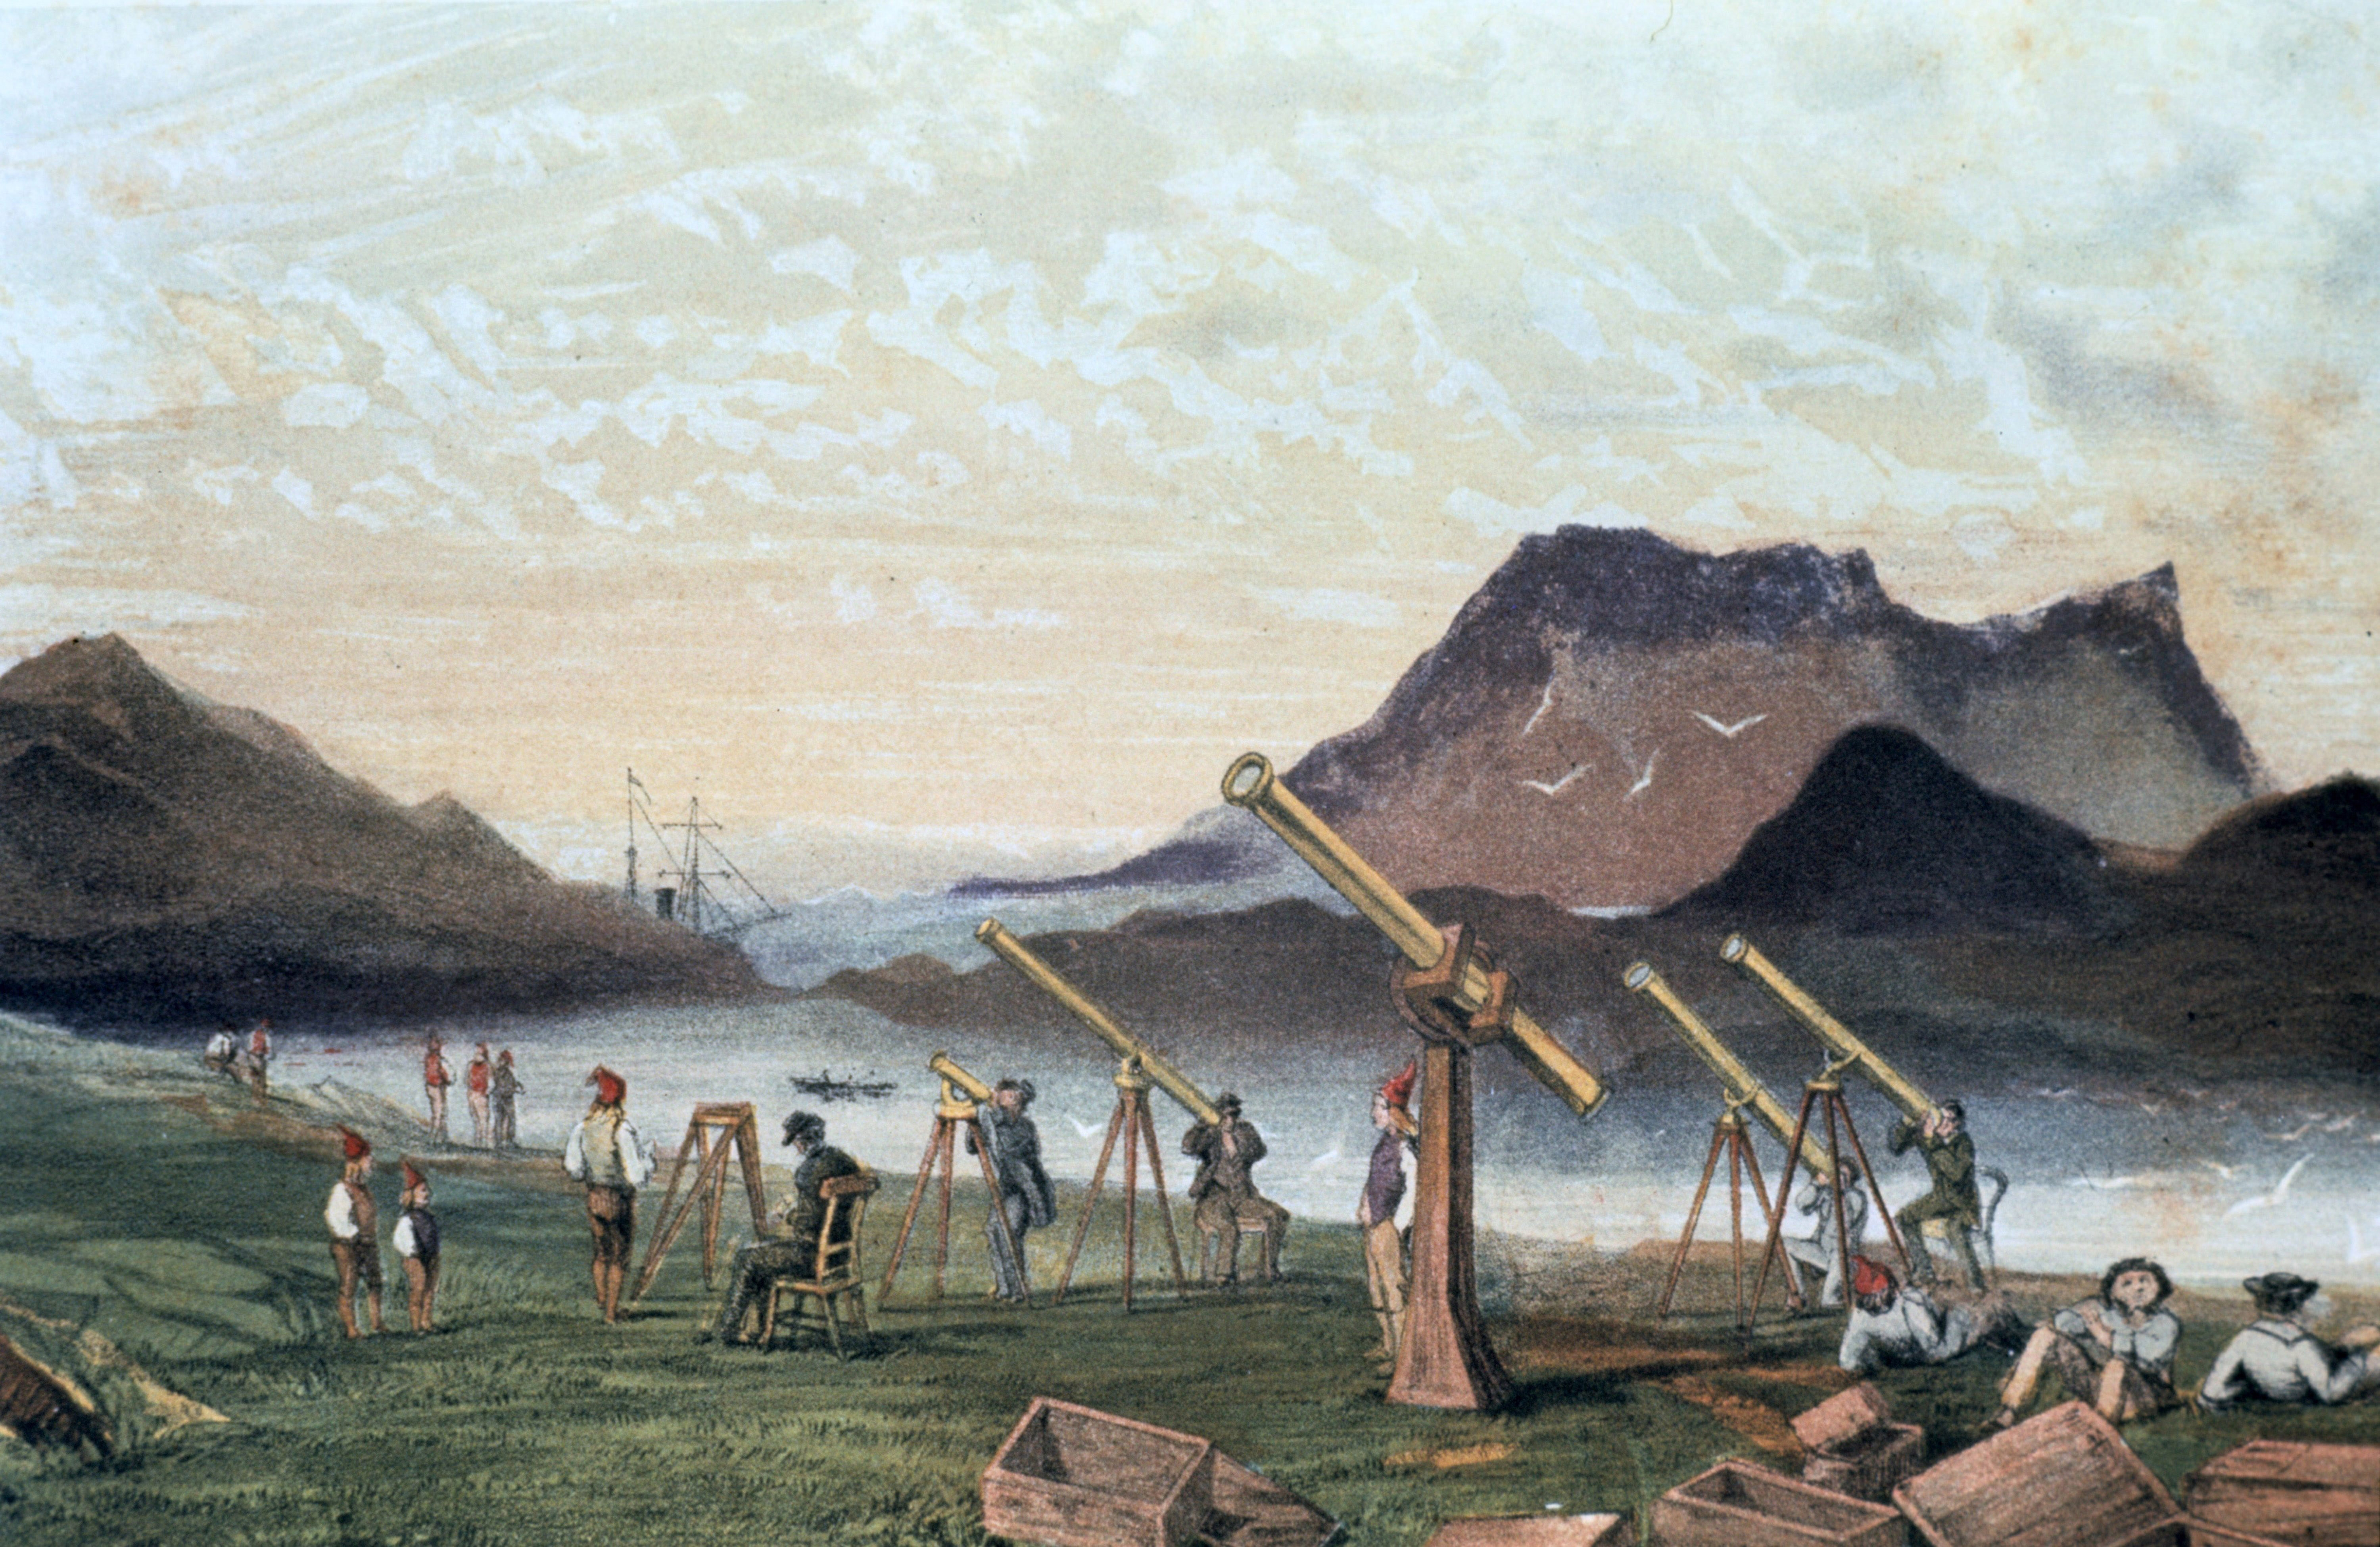 Total Solar Eclipse, 1851. Members of the Edinburgh expedition on Bue Island, Norway with their instruments set up ready for viewing the eclipse , 28 July 1851. Members of the crew from their transport vessel are seated on right by empty packing cases. From Astronomical Observations made at the Royal Observatory, Edinburgh.